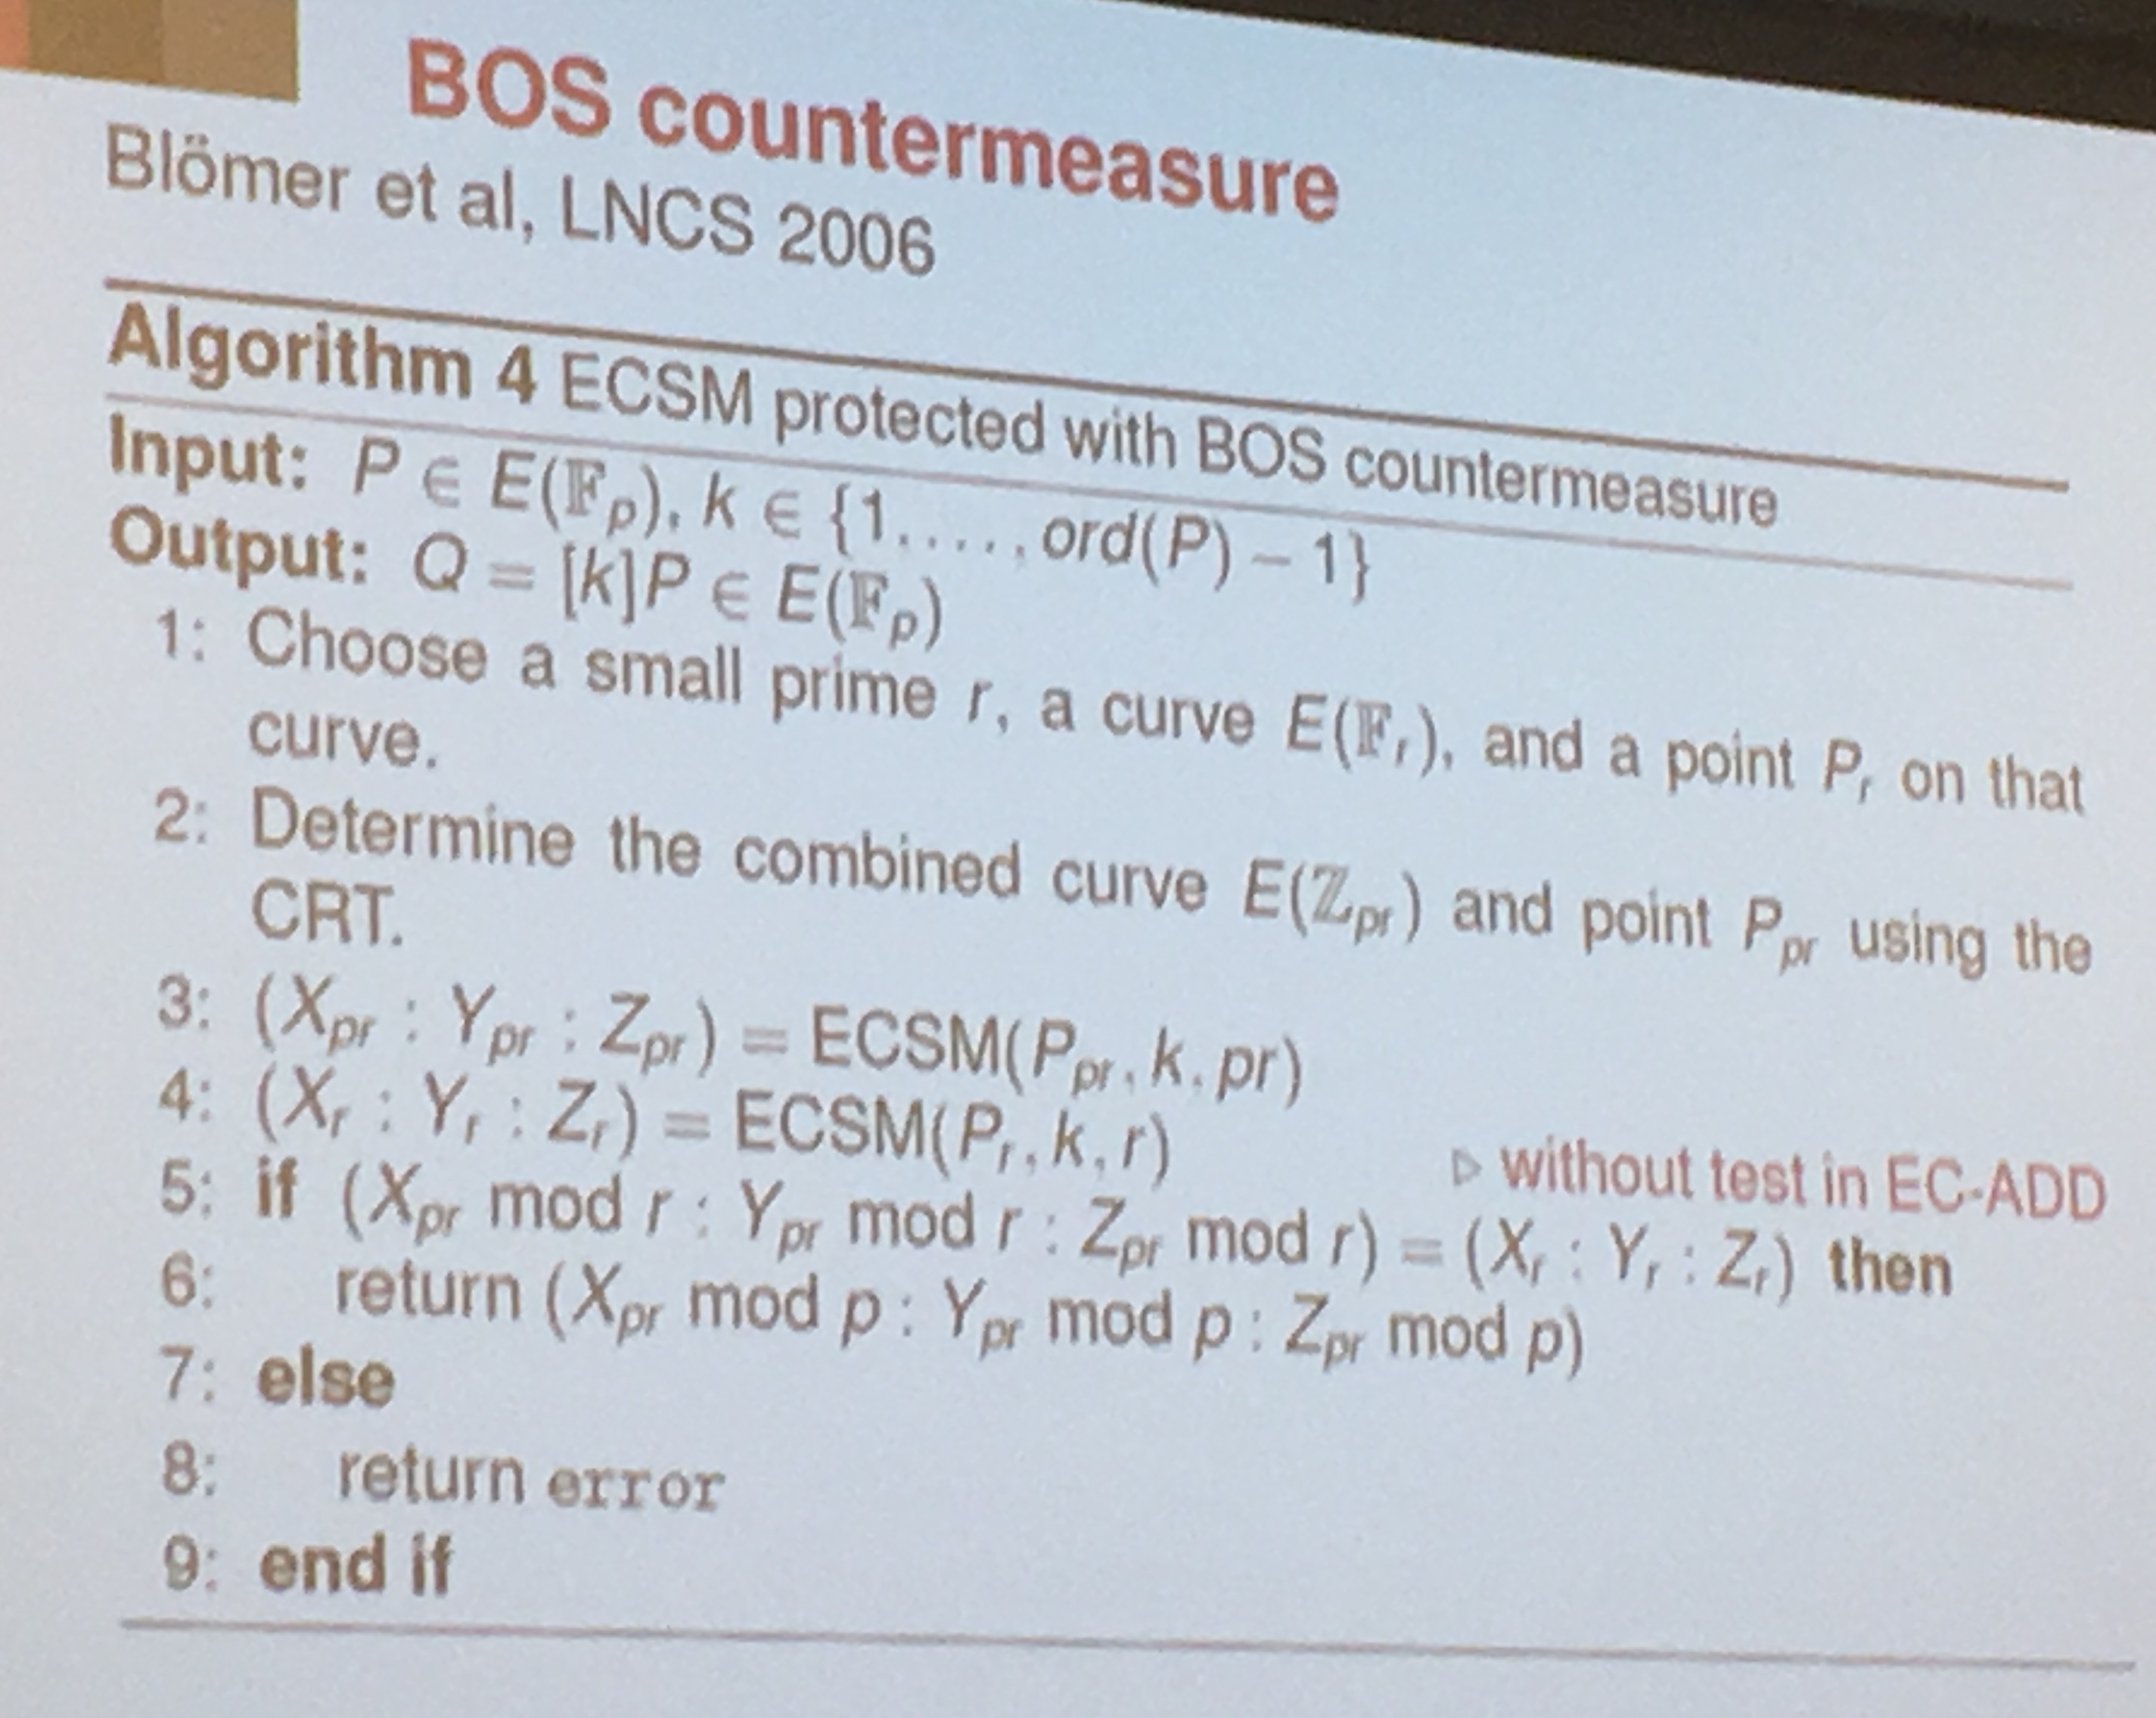 BOS countermeasure